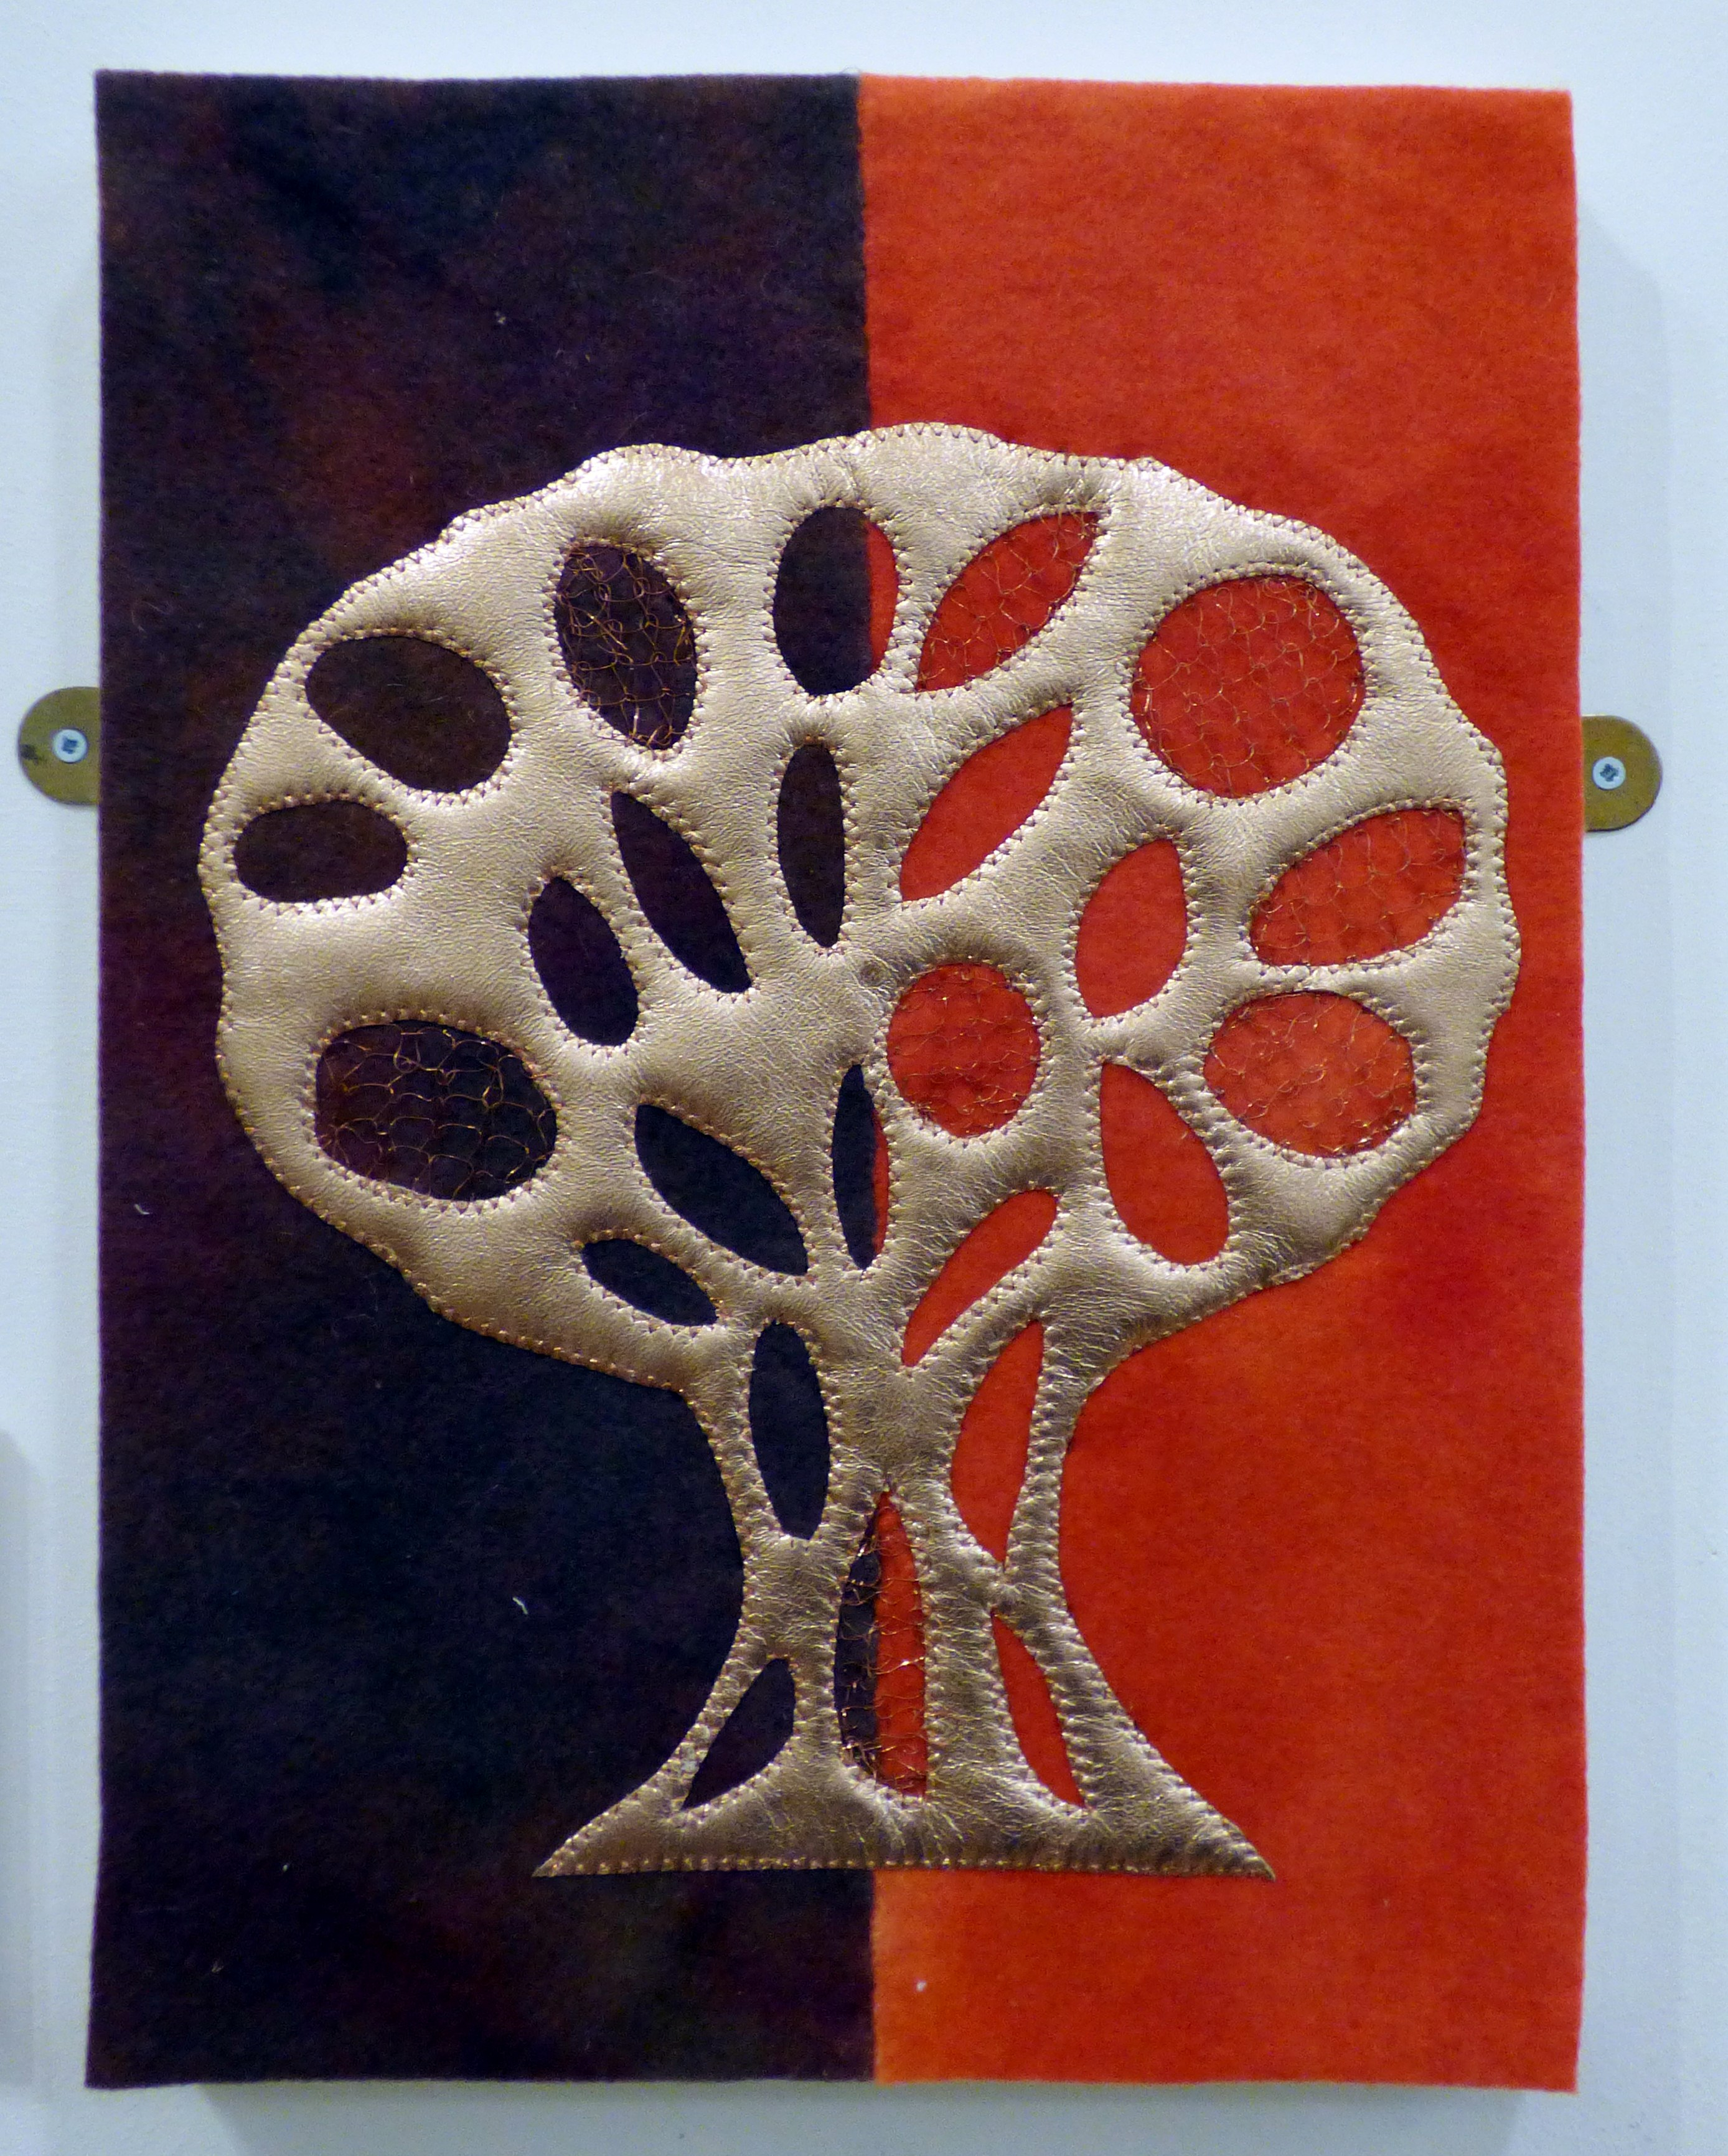 COPPER BEECH by Barbara Meeke, Chesterfield EG, leather and wire on felt